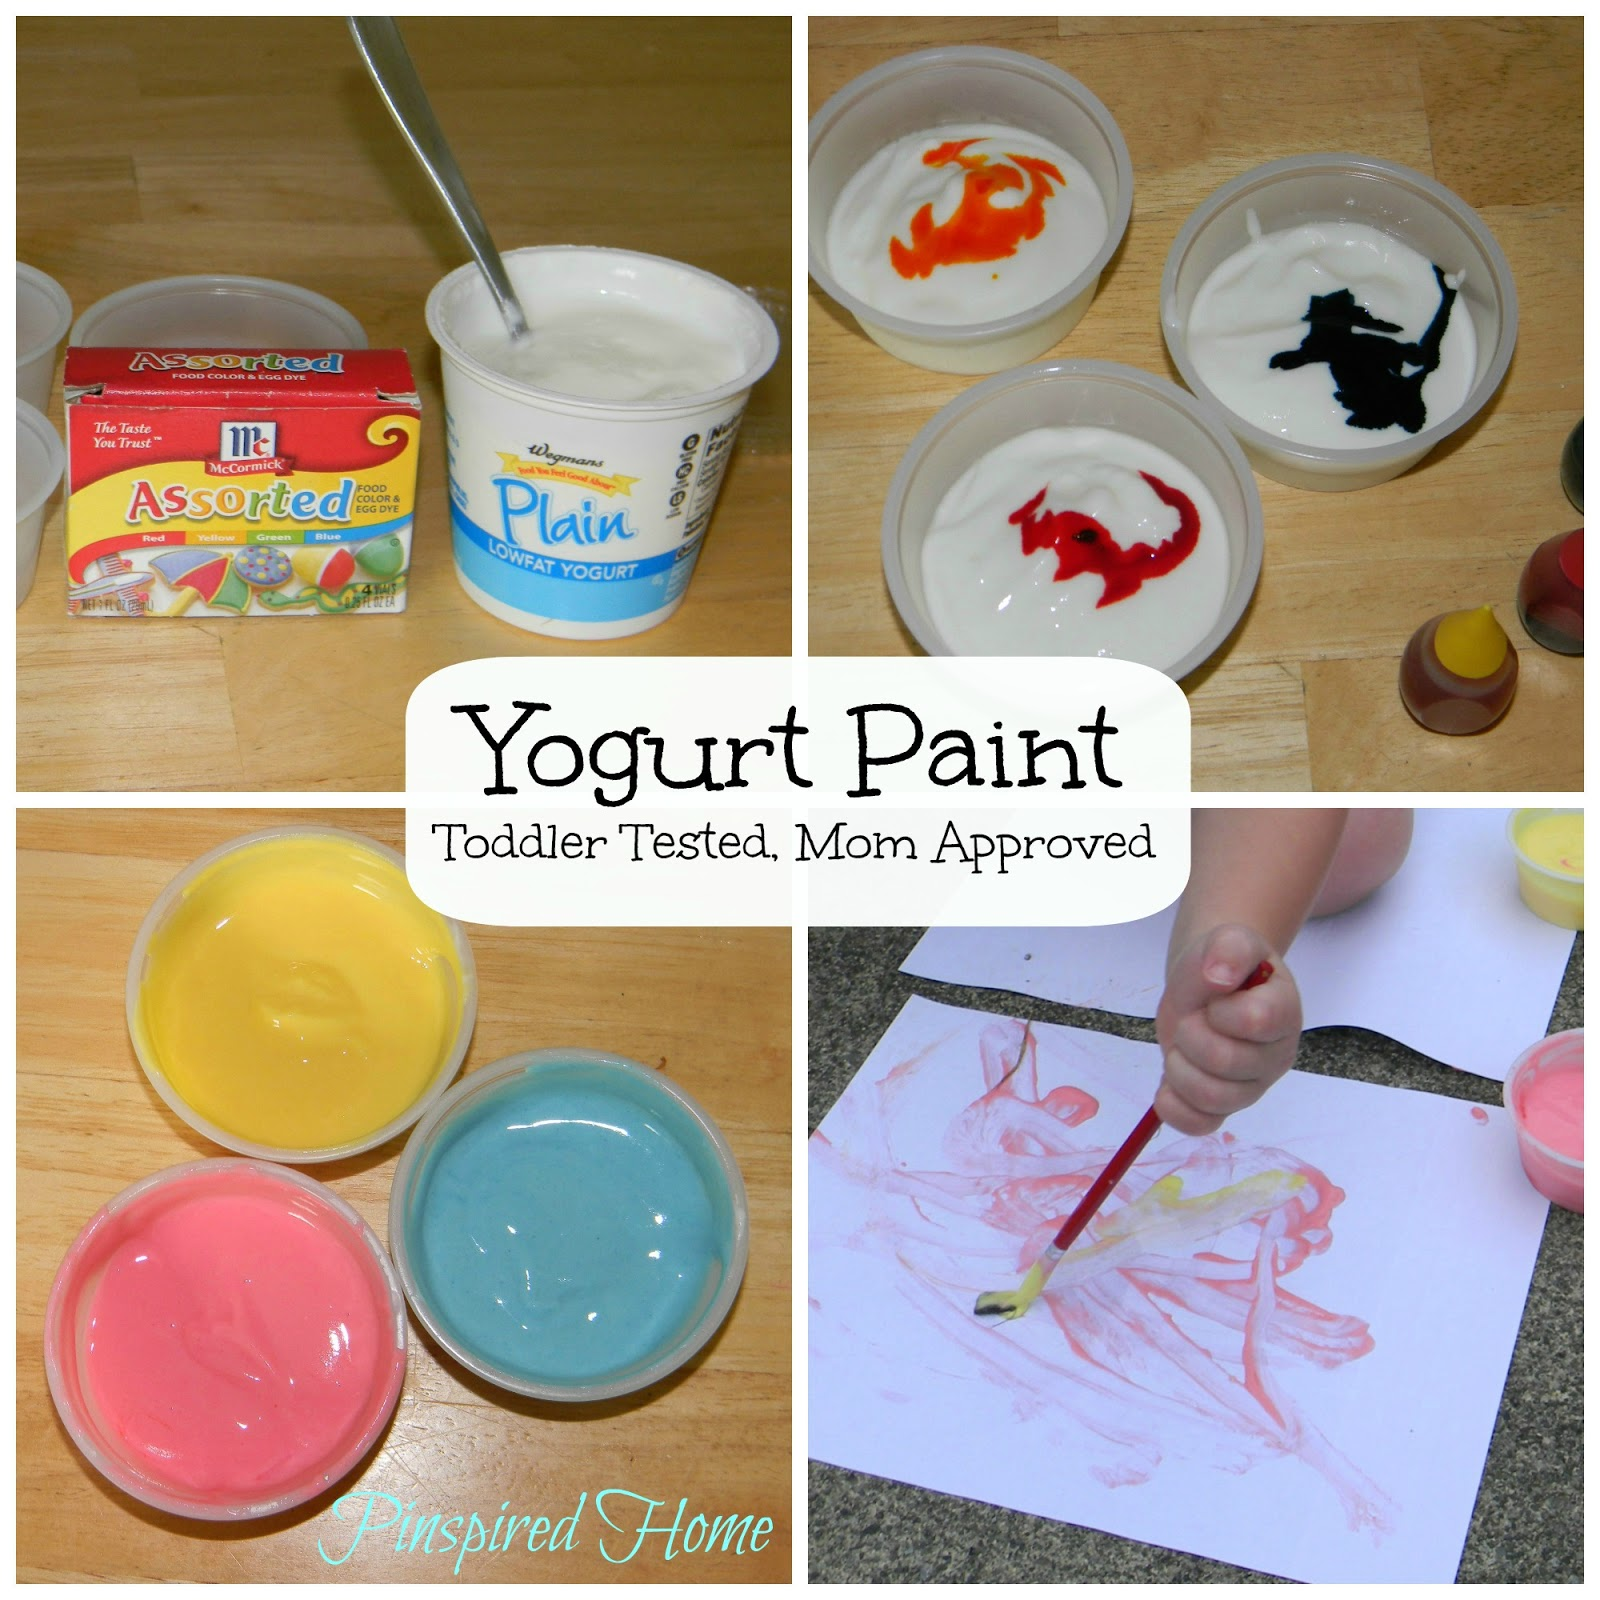 Pinspired Home: Yogurt Paint: Toddler Tested, Mom Approved